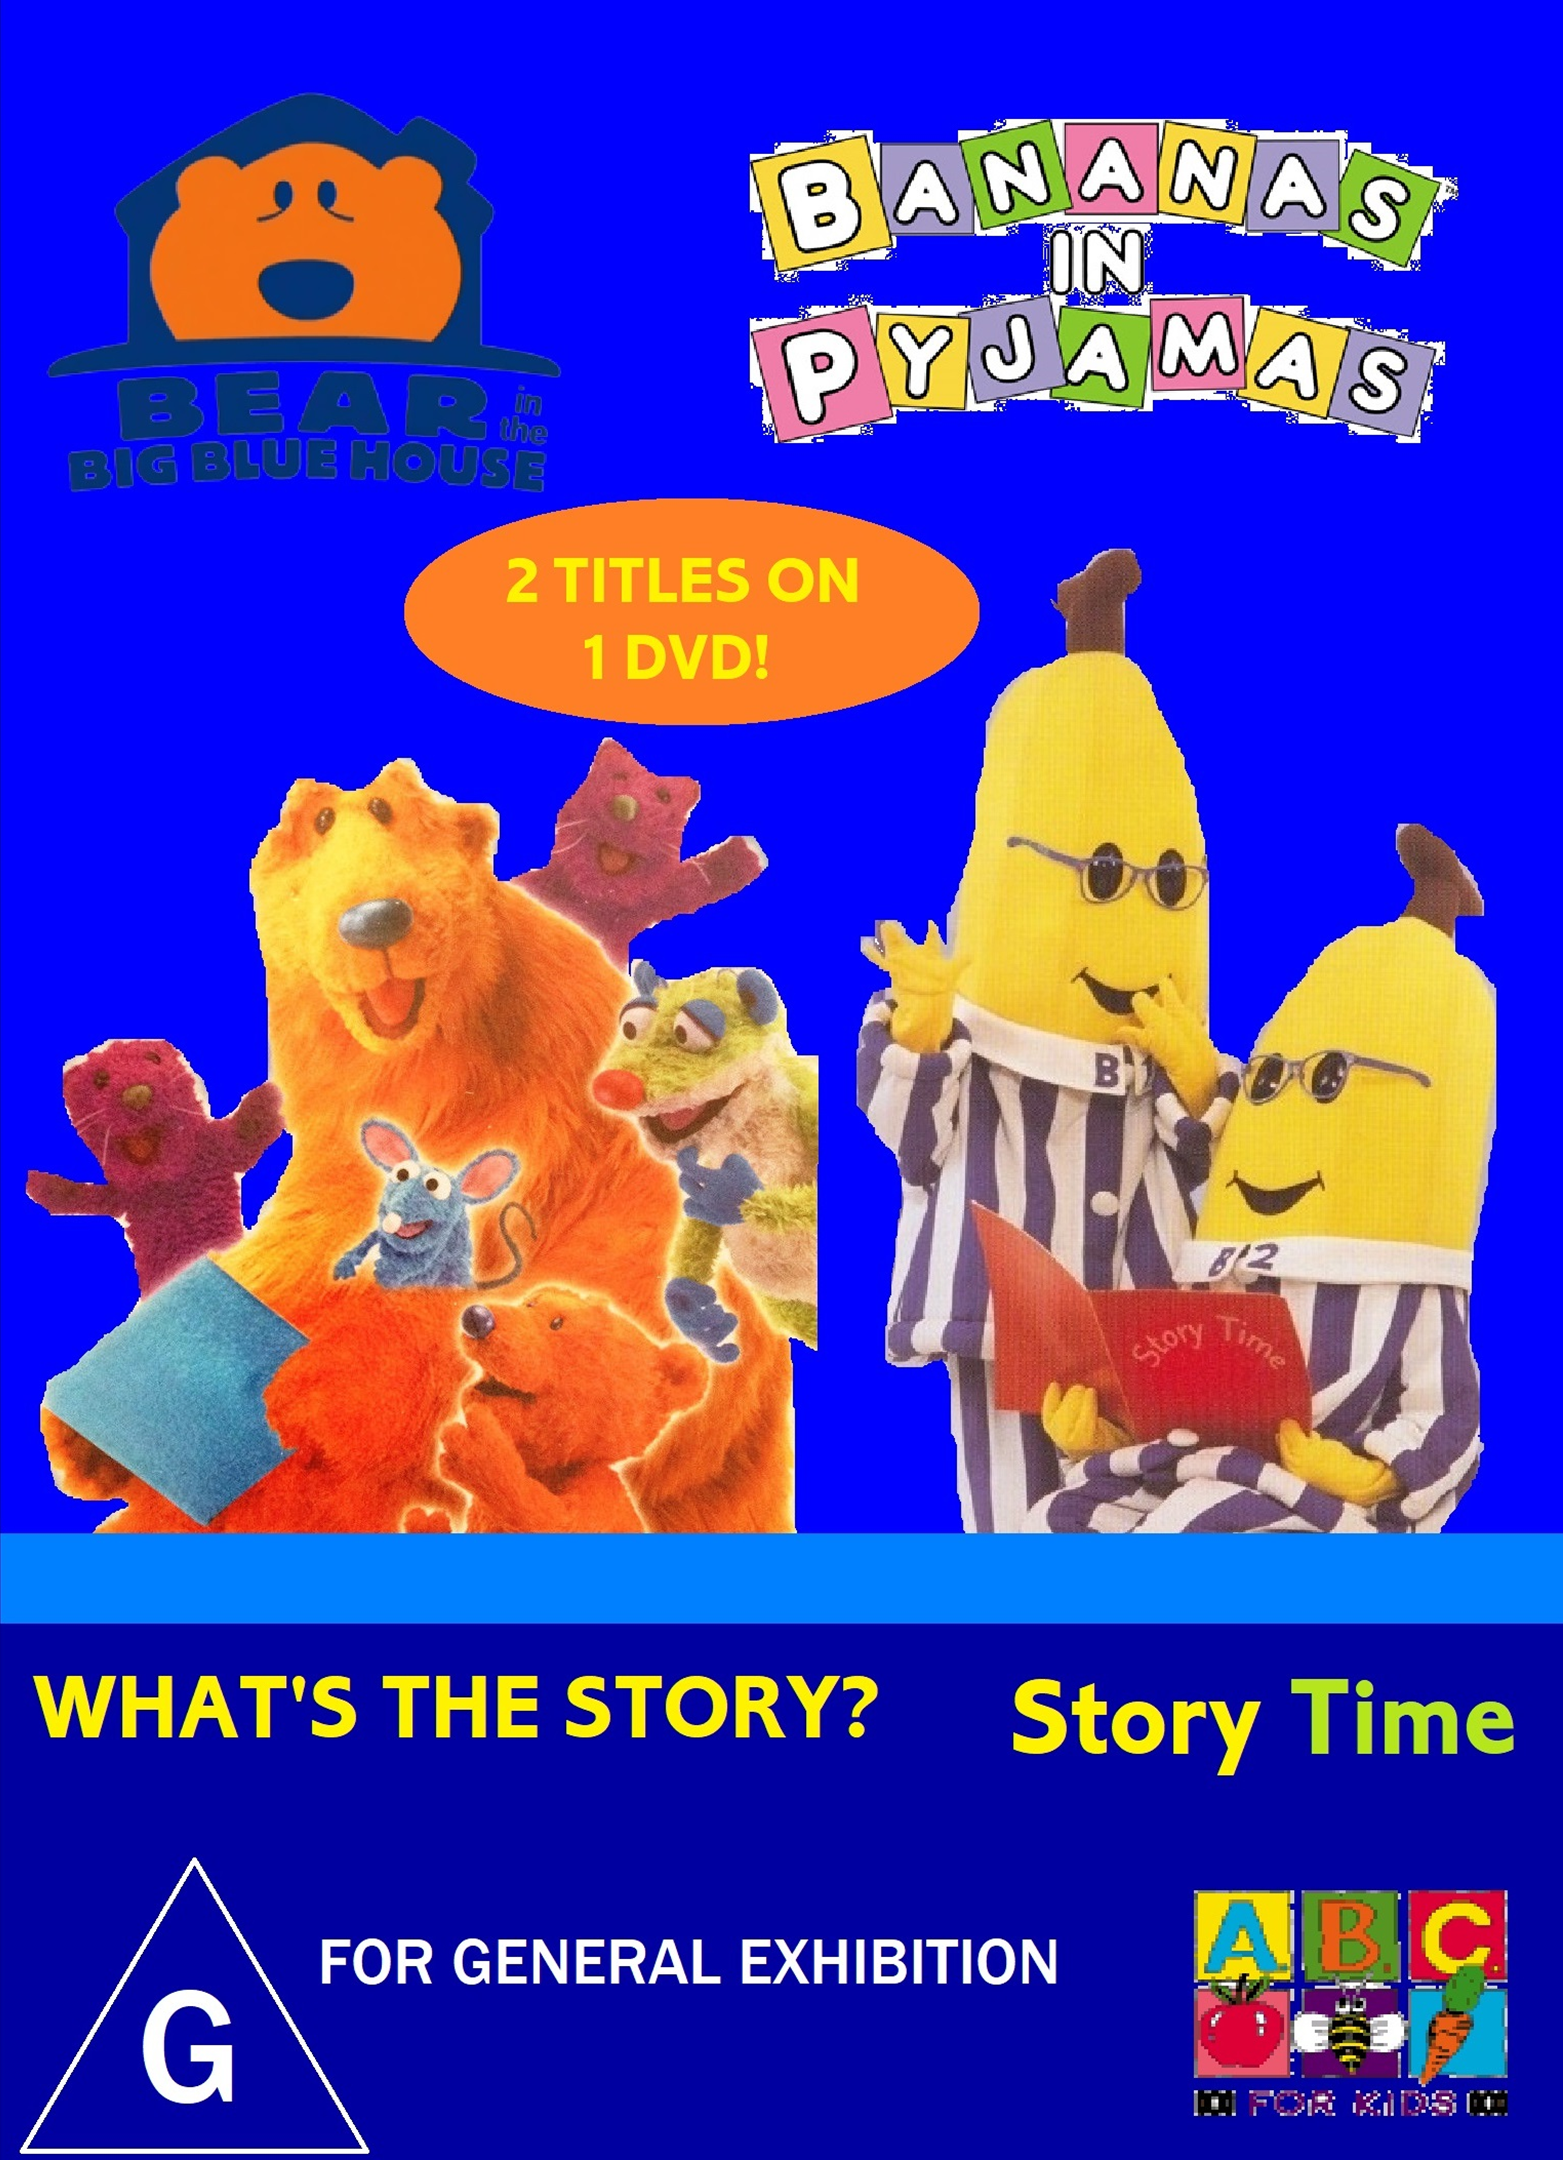 What's the Story + Story Time